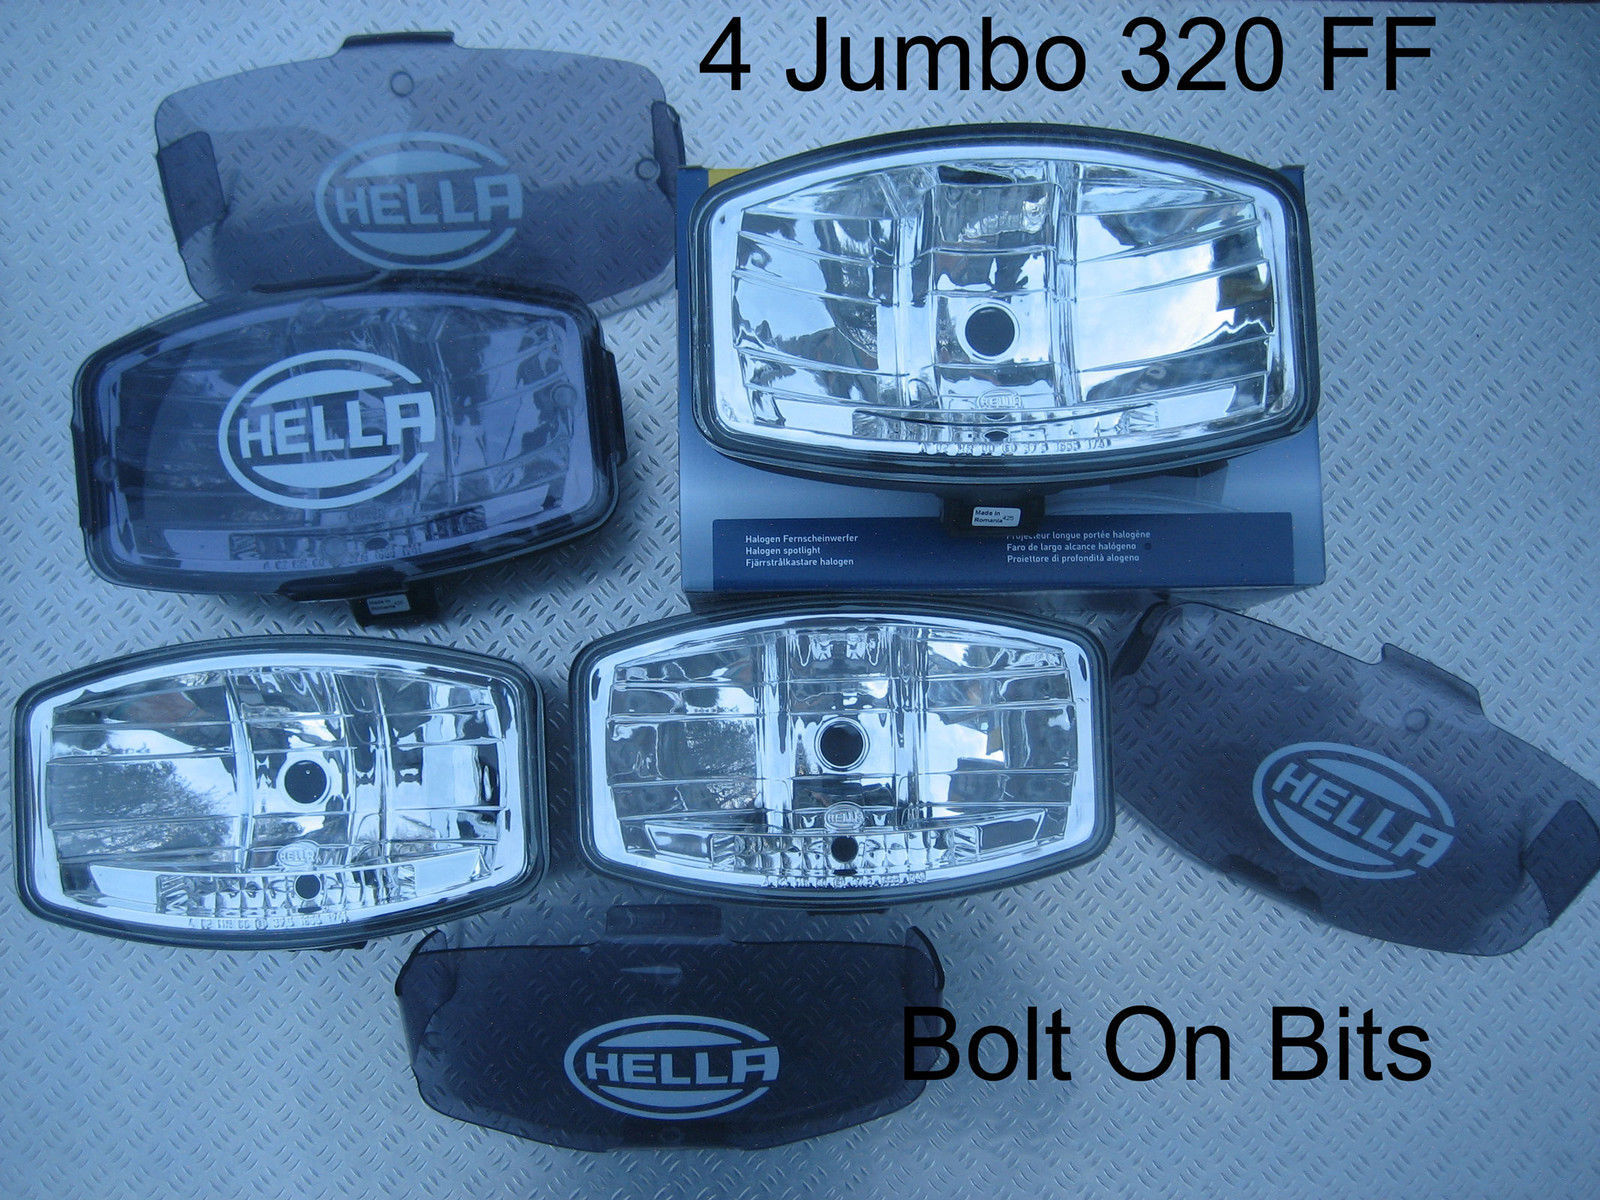 4 24v Hella Jumbo 320 Ff Spot Light Lamps Covers Kelsa Bar Scania Spotlight Wiring Diagram 1 Of 1only 5 Available